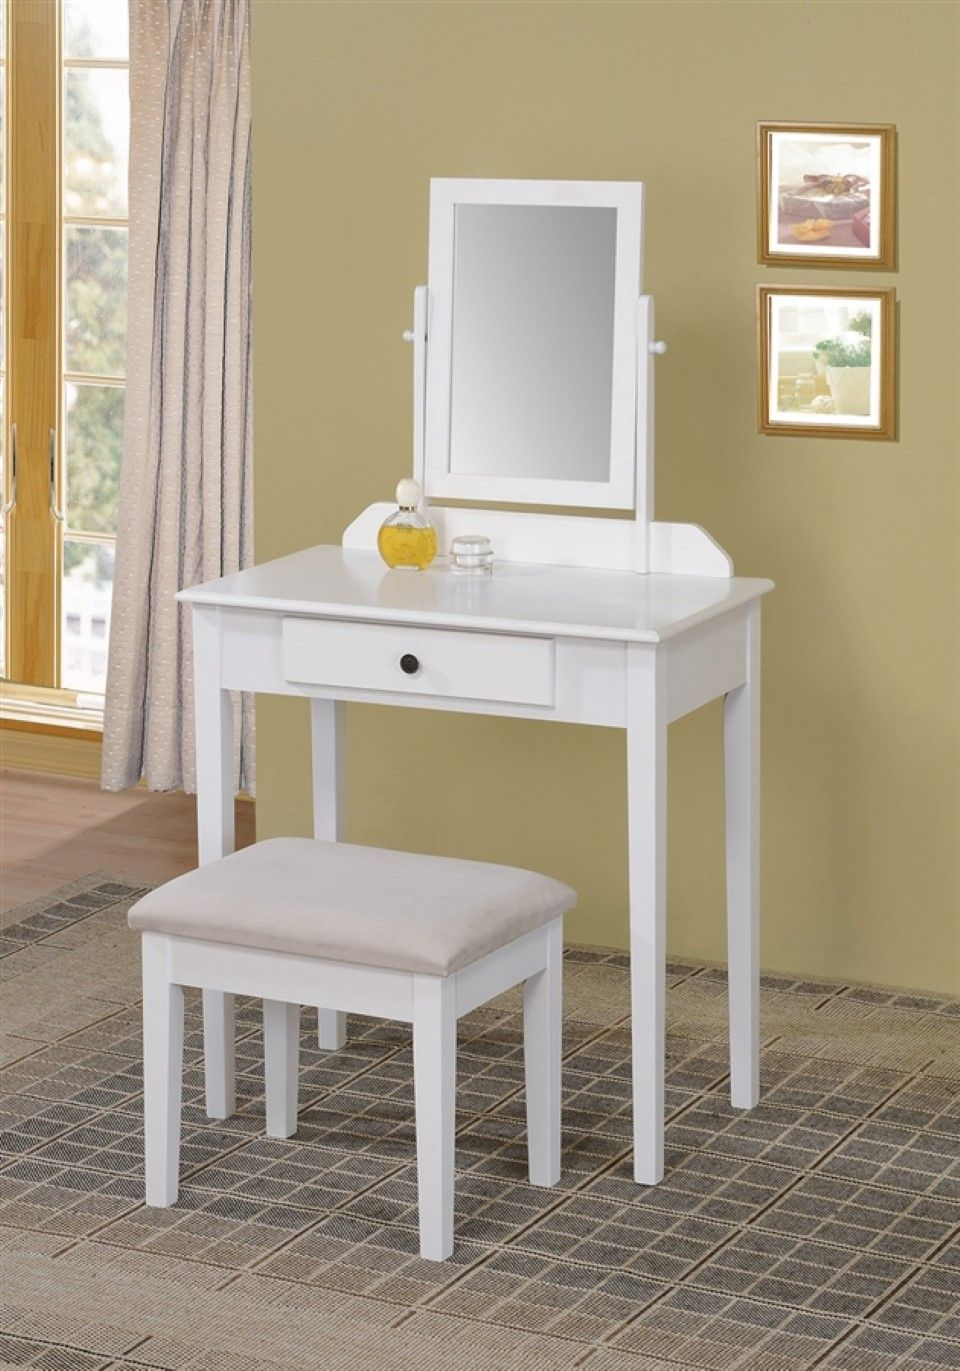 Home design, Small White Bedroom Vanity Set With Spinning